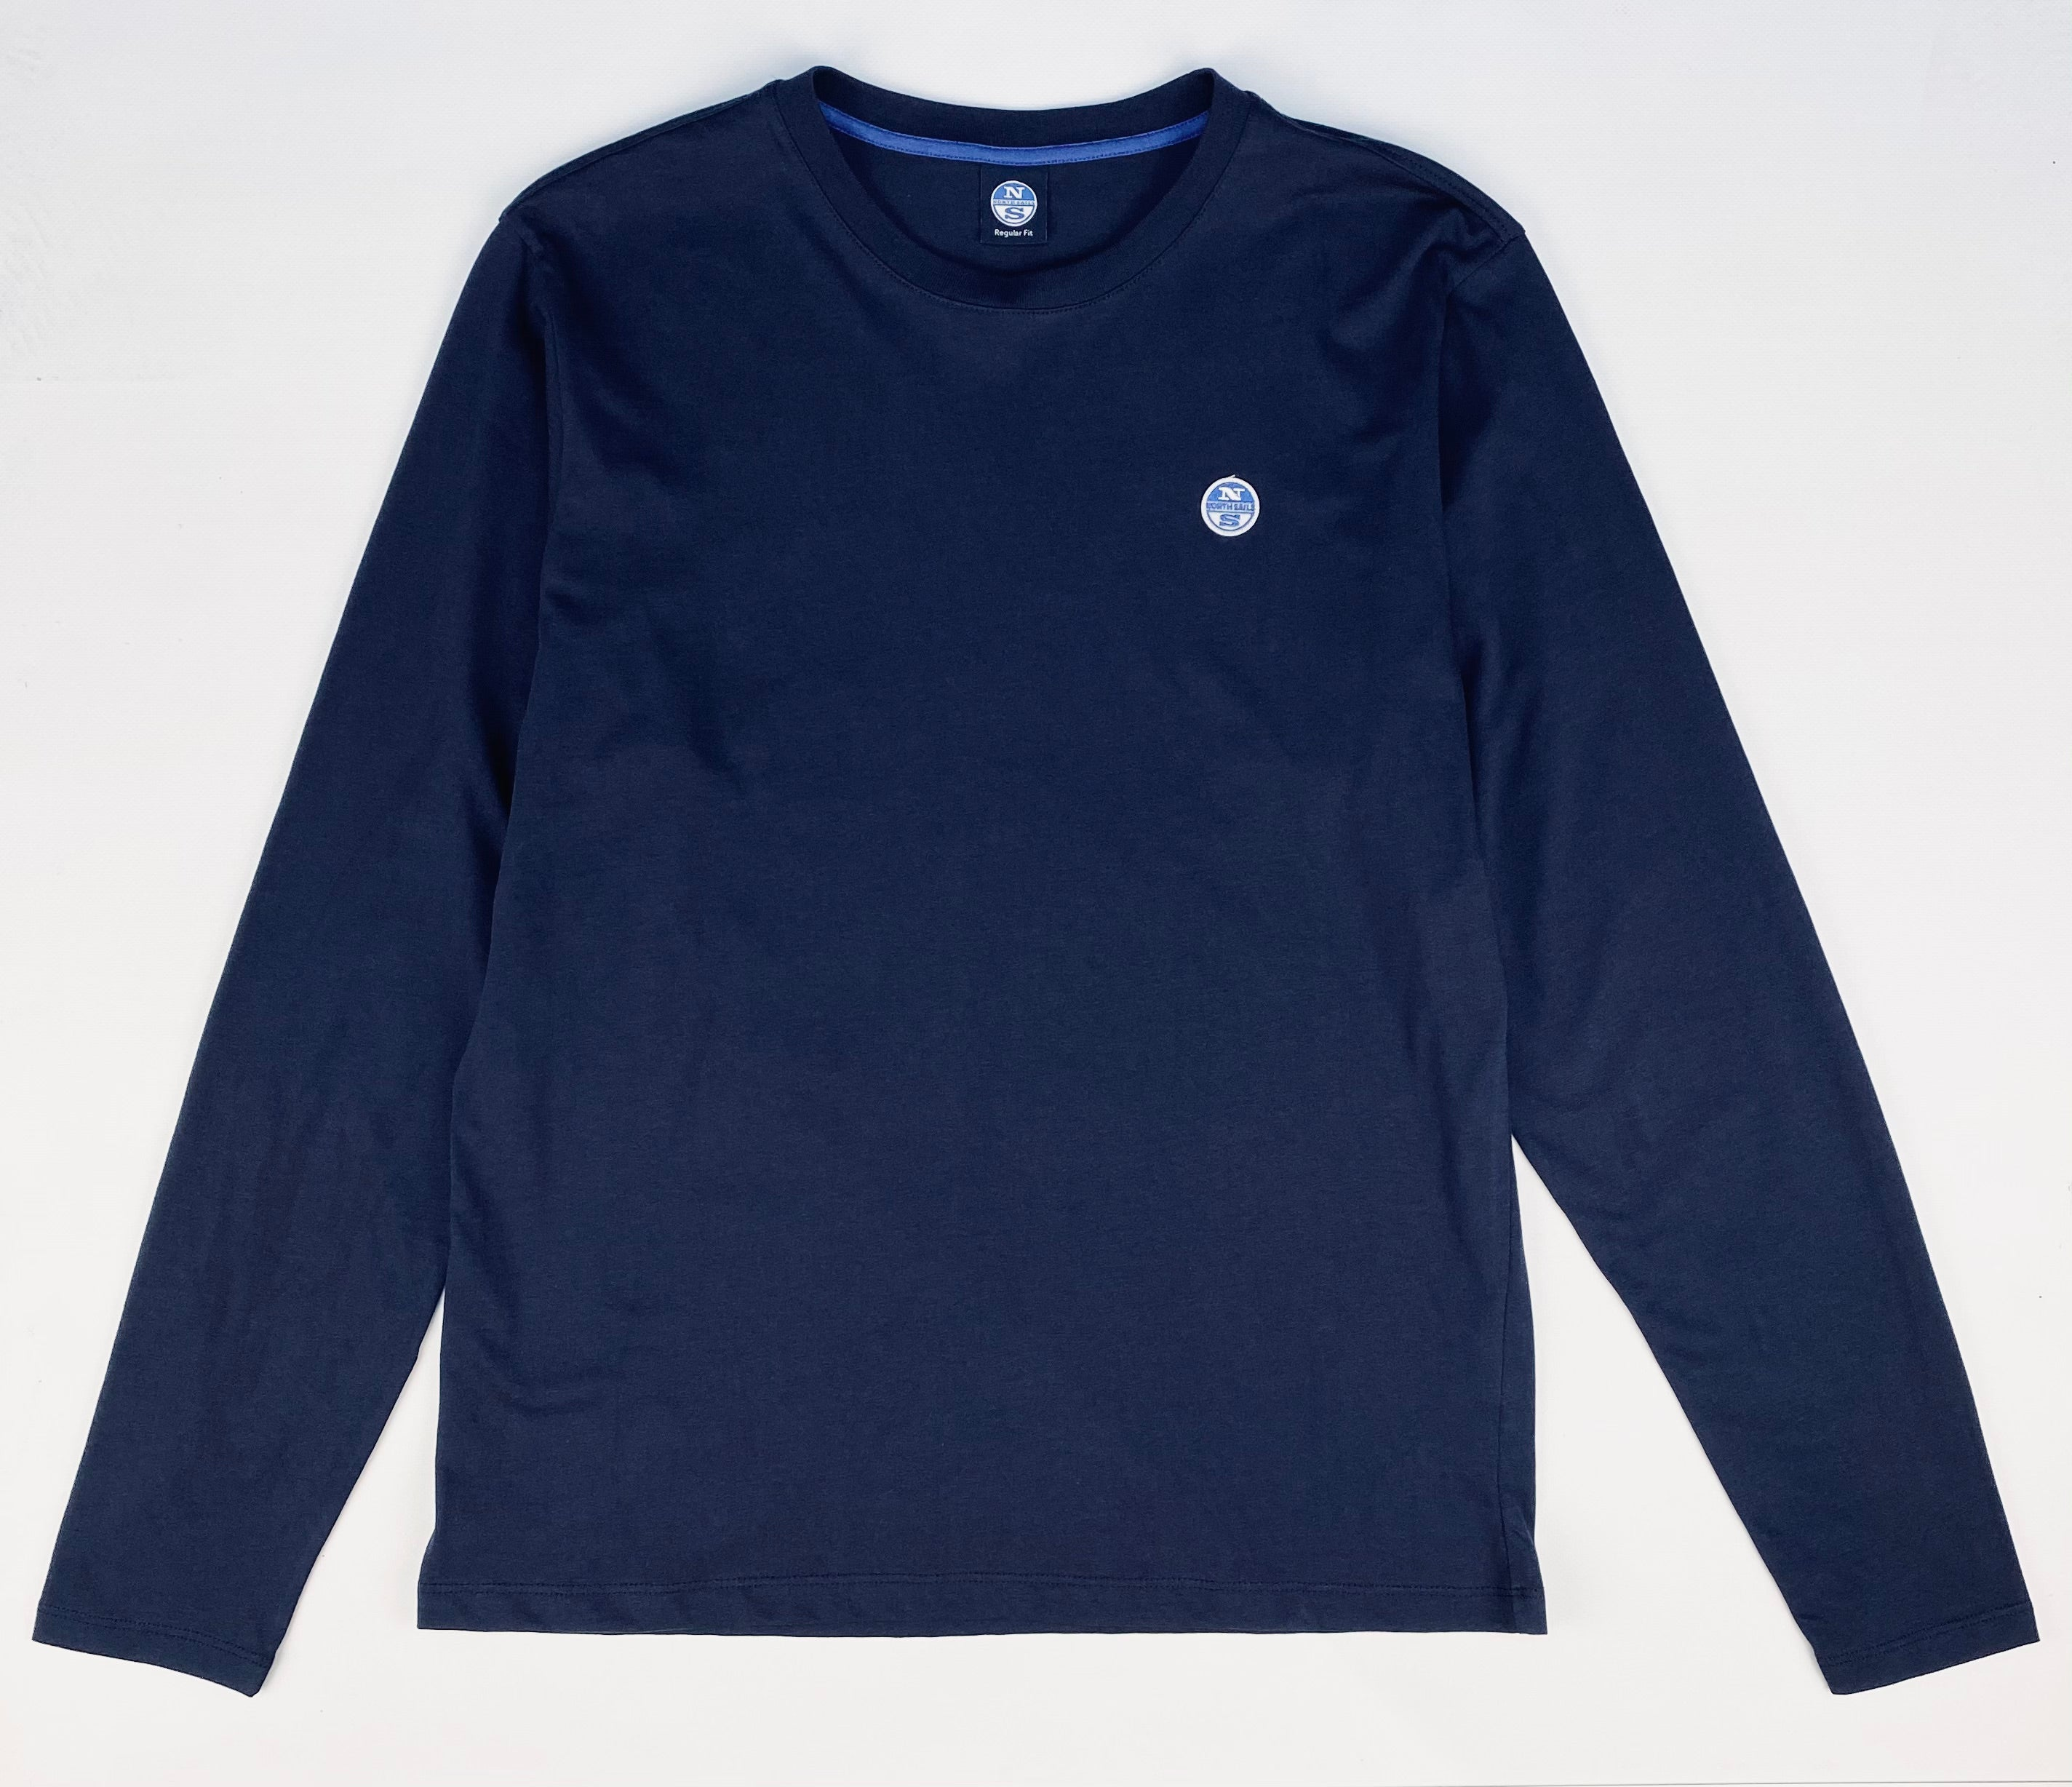 North Sails Basic Long Sleeved Crew Neck T-Shirt Navy